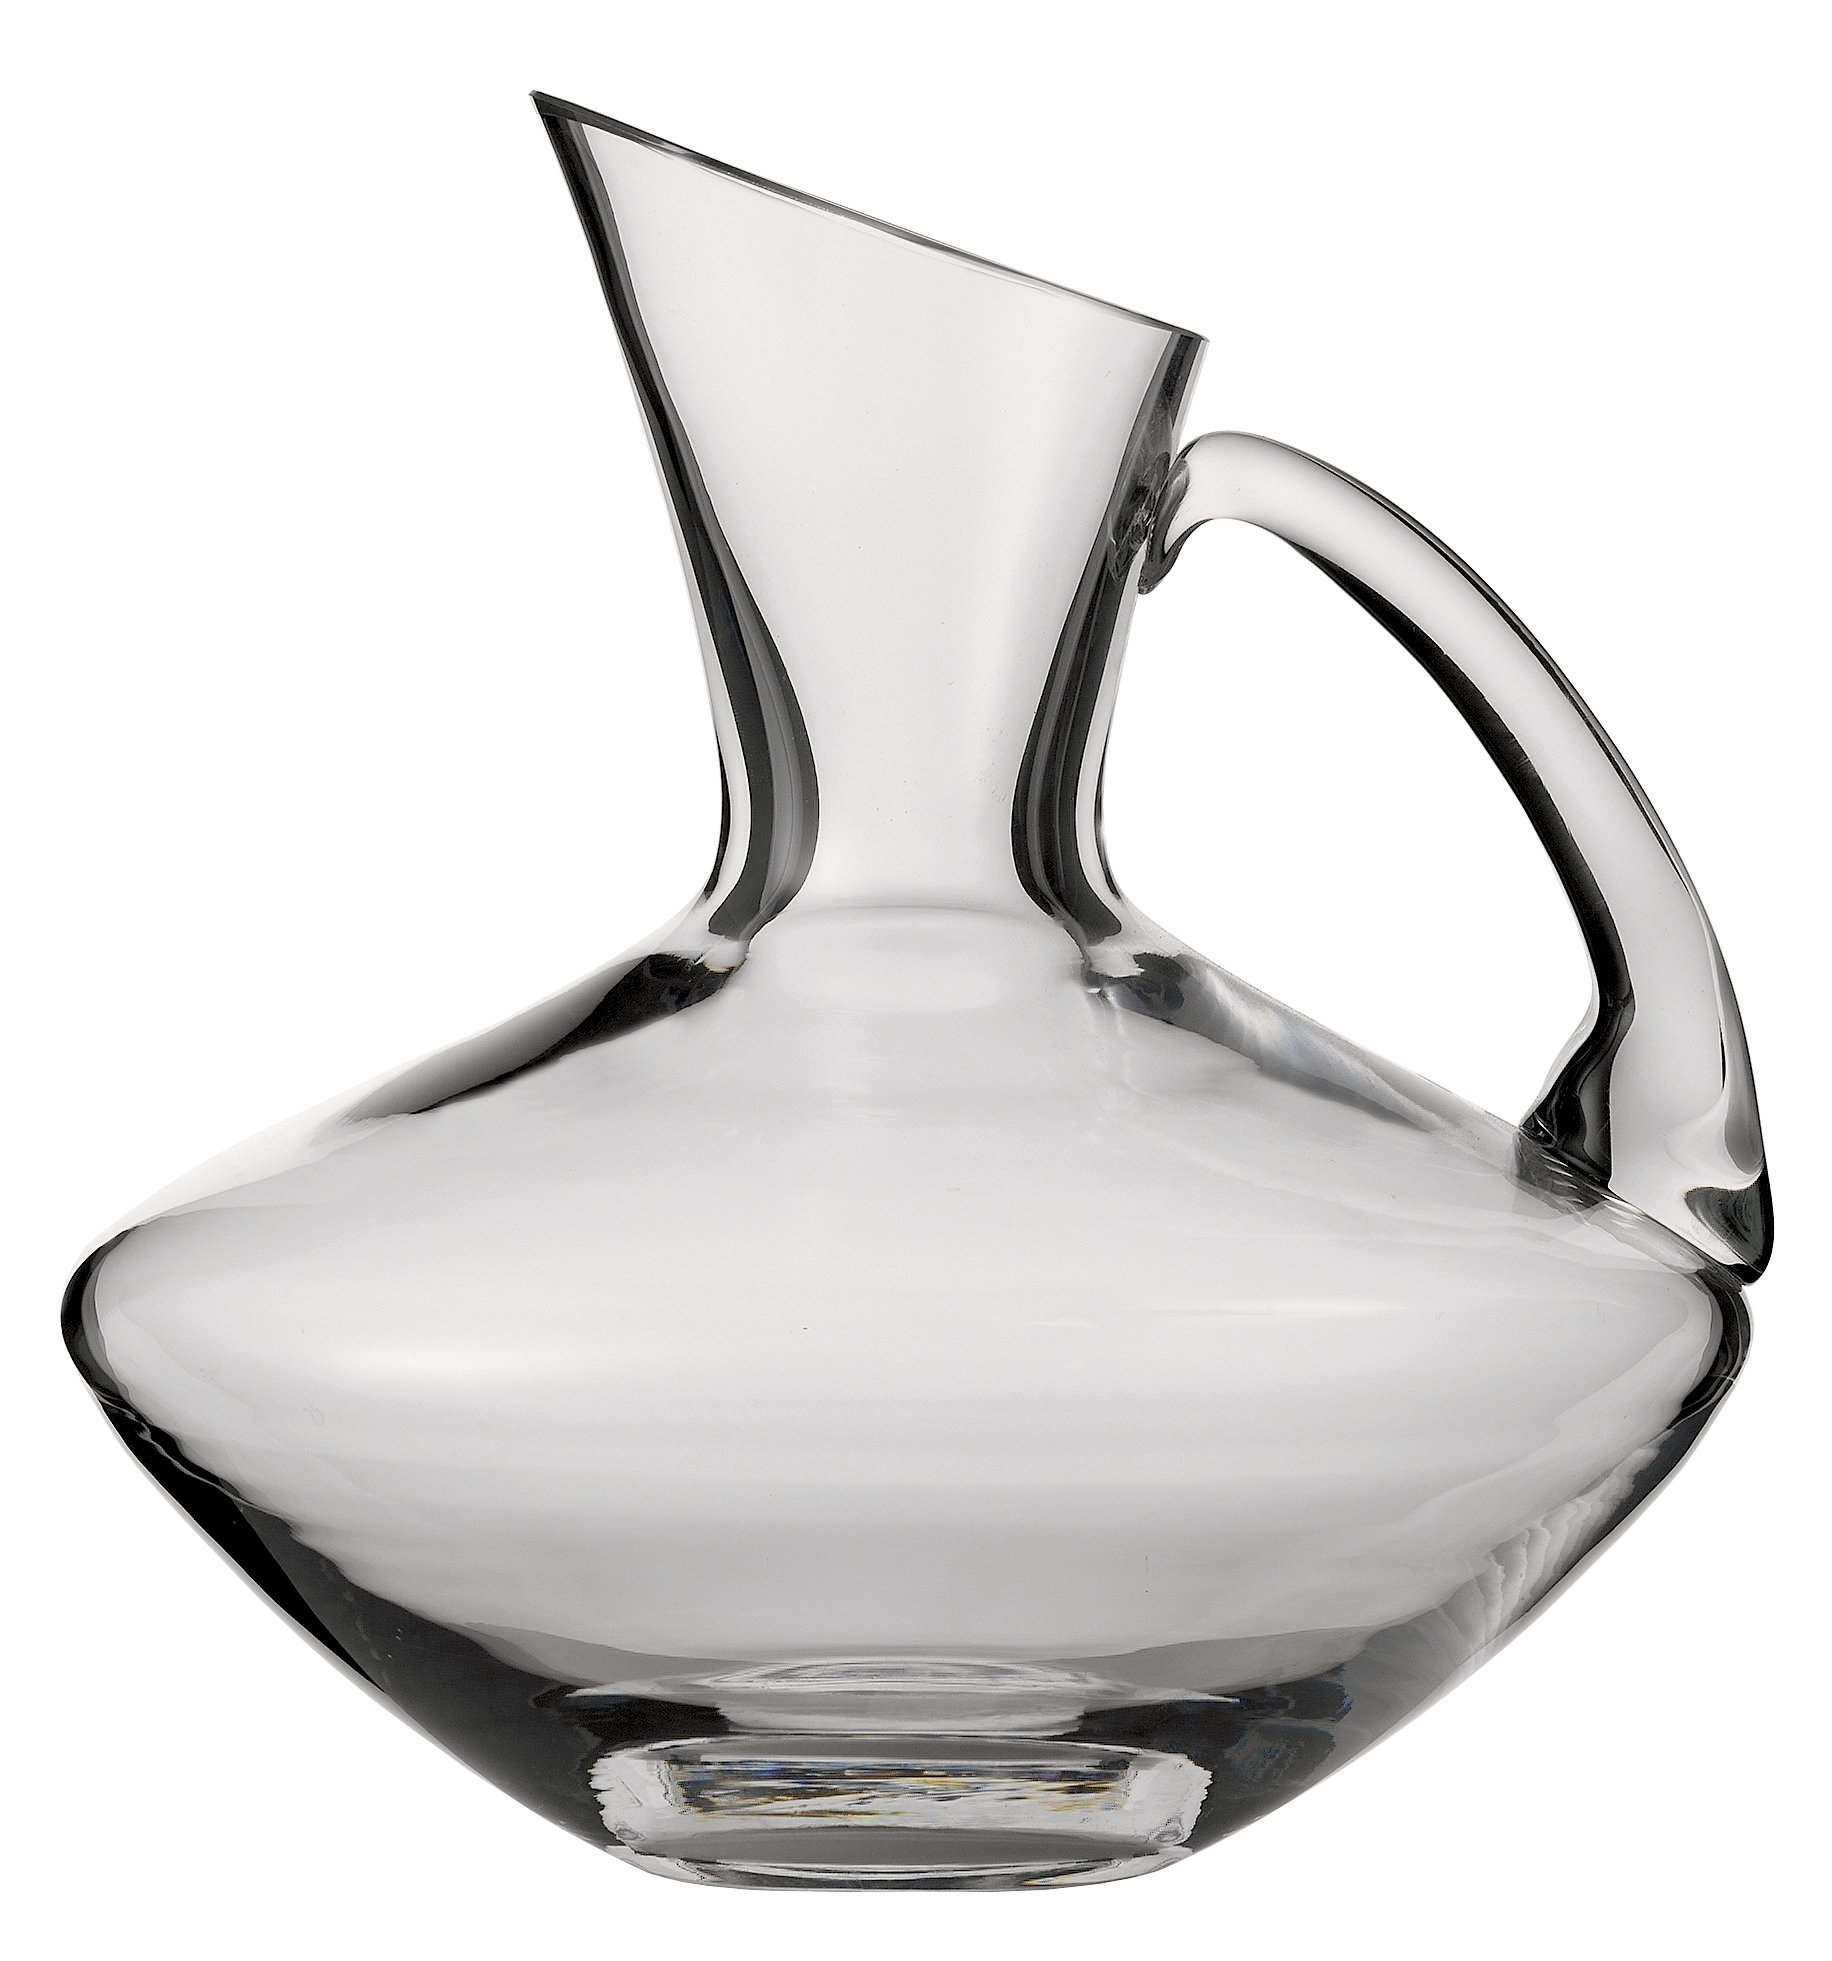 Zwiesel 1872 Handmade Glass Beaune Red Wine Decanter with Handle, 33.8-Ounce